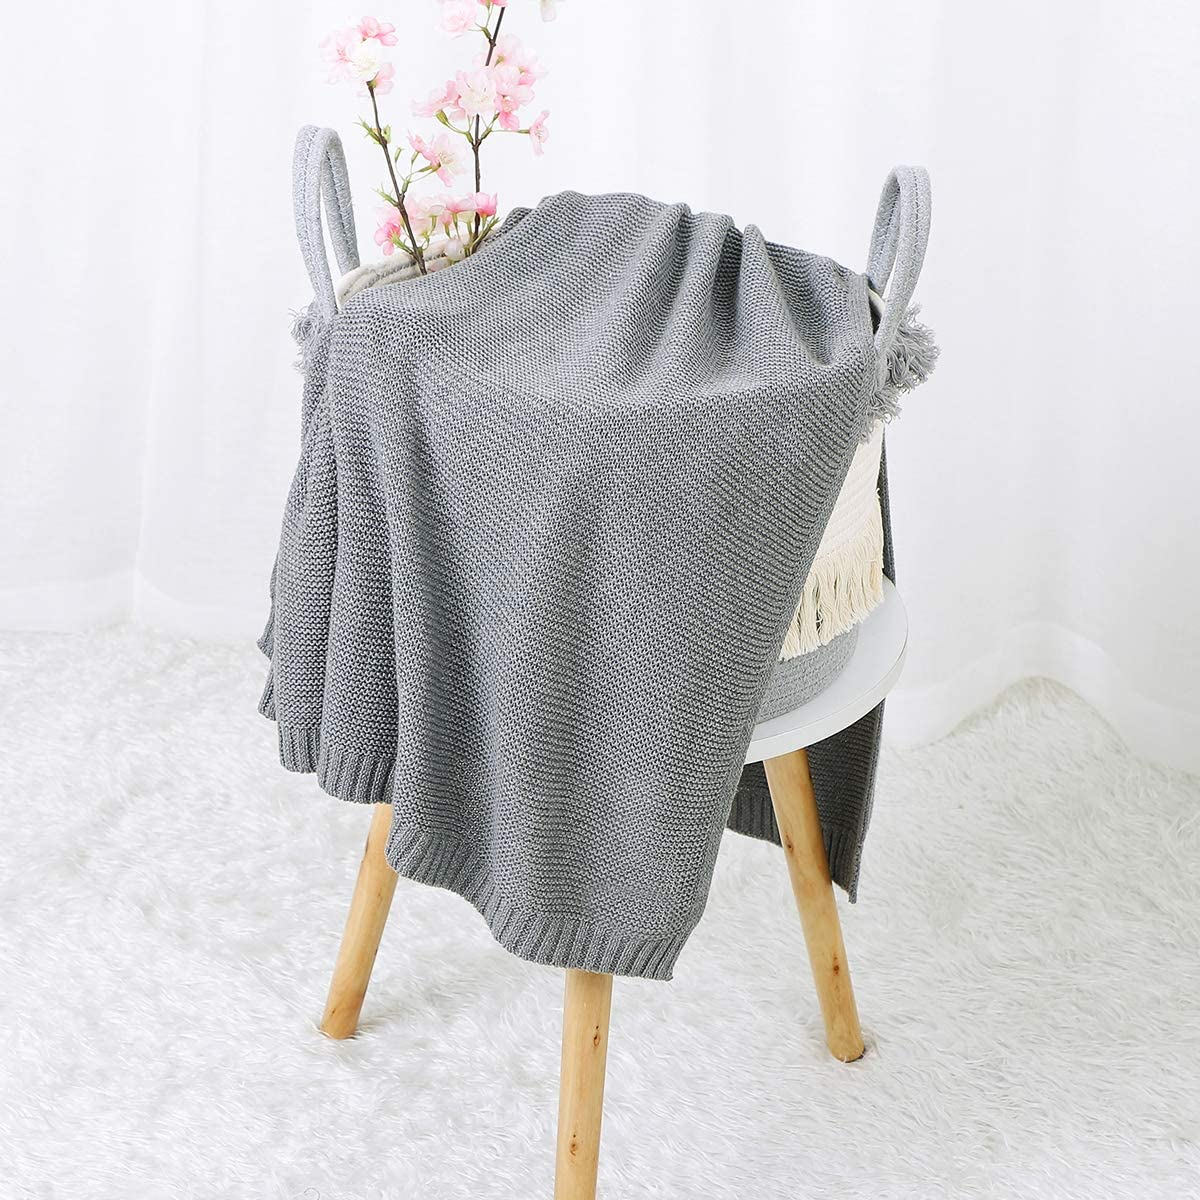 Hadetoto Baby Blanket 100% Cotton Knit Toddler Blankets Boys Girls Soft Knit Blankets Size 30 x 40 inches Grey